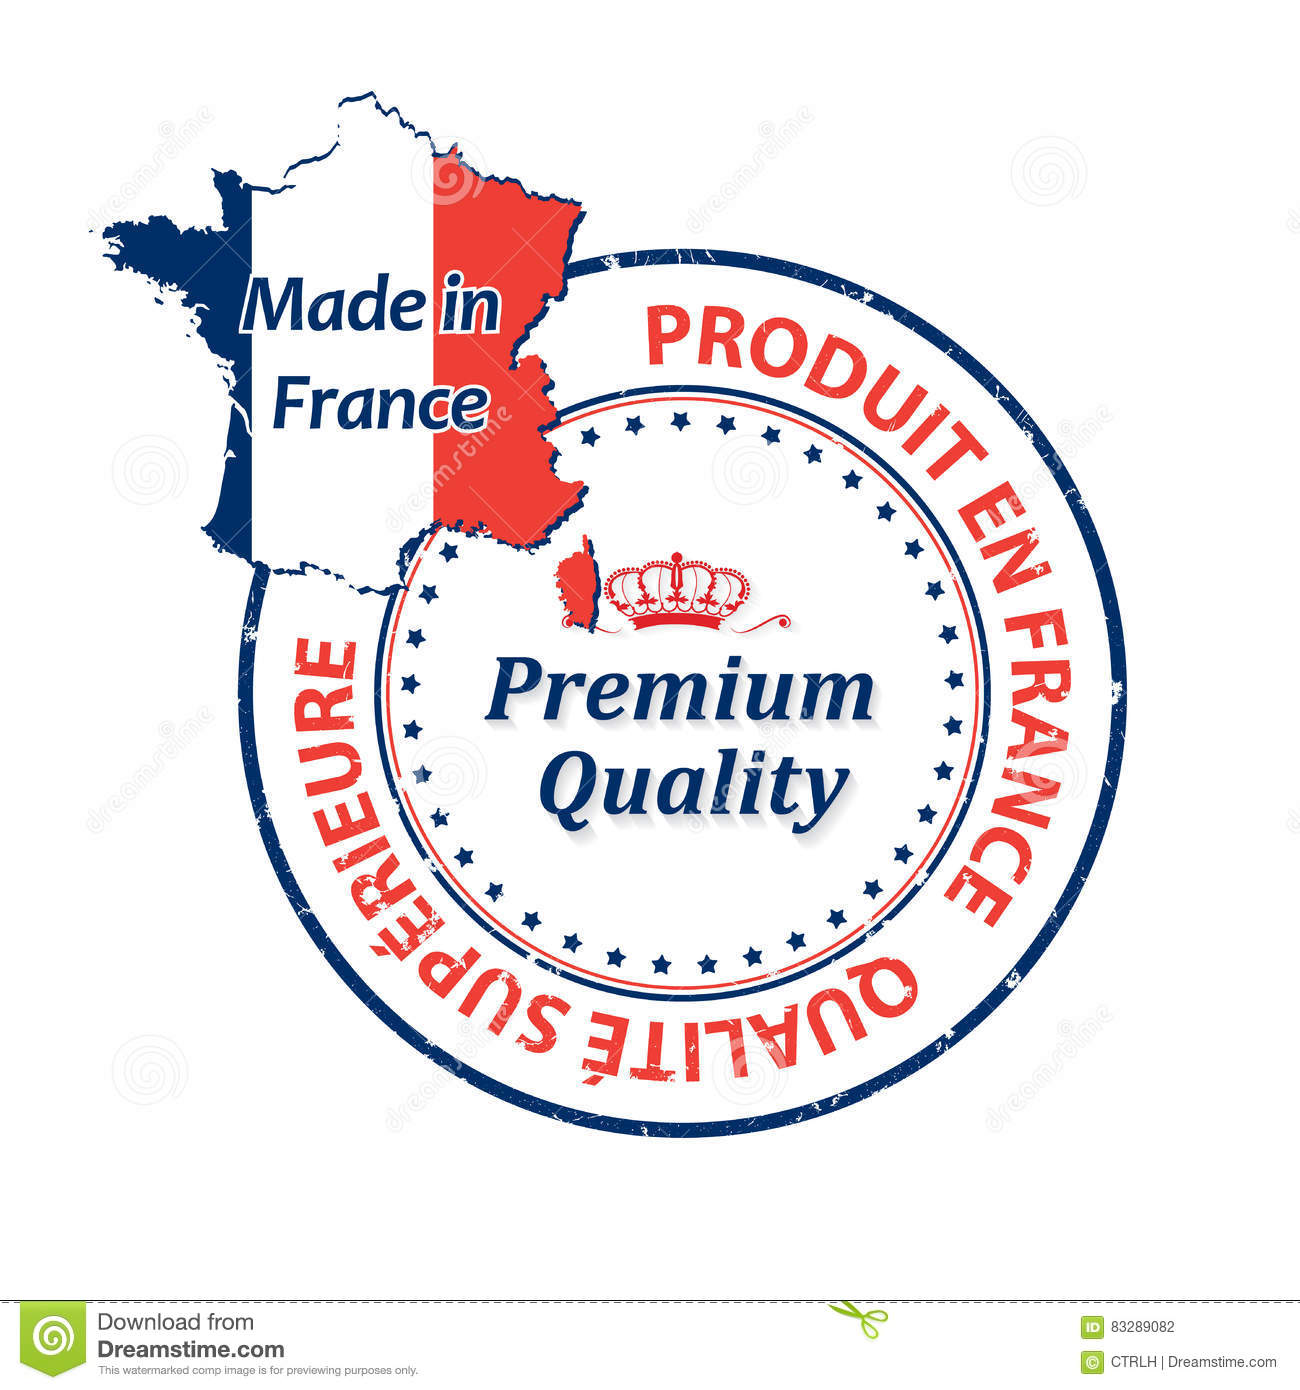 Map Of France In French Language.Made In France Premium Quality French Language Stock Illustration